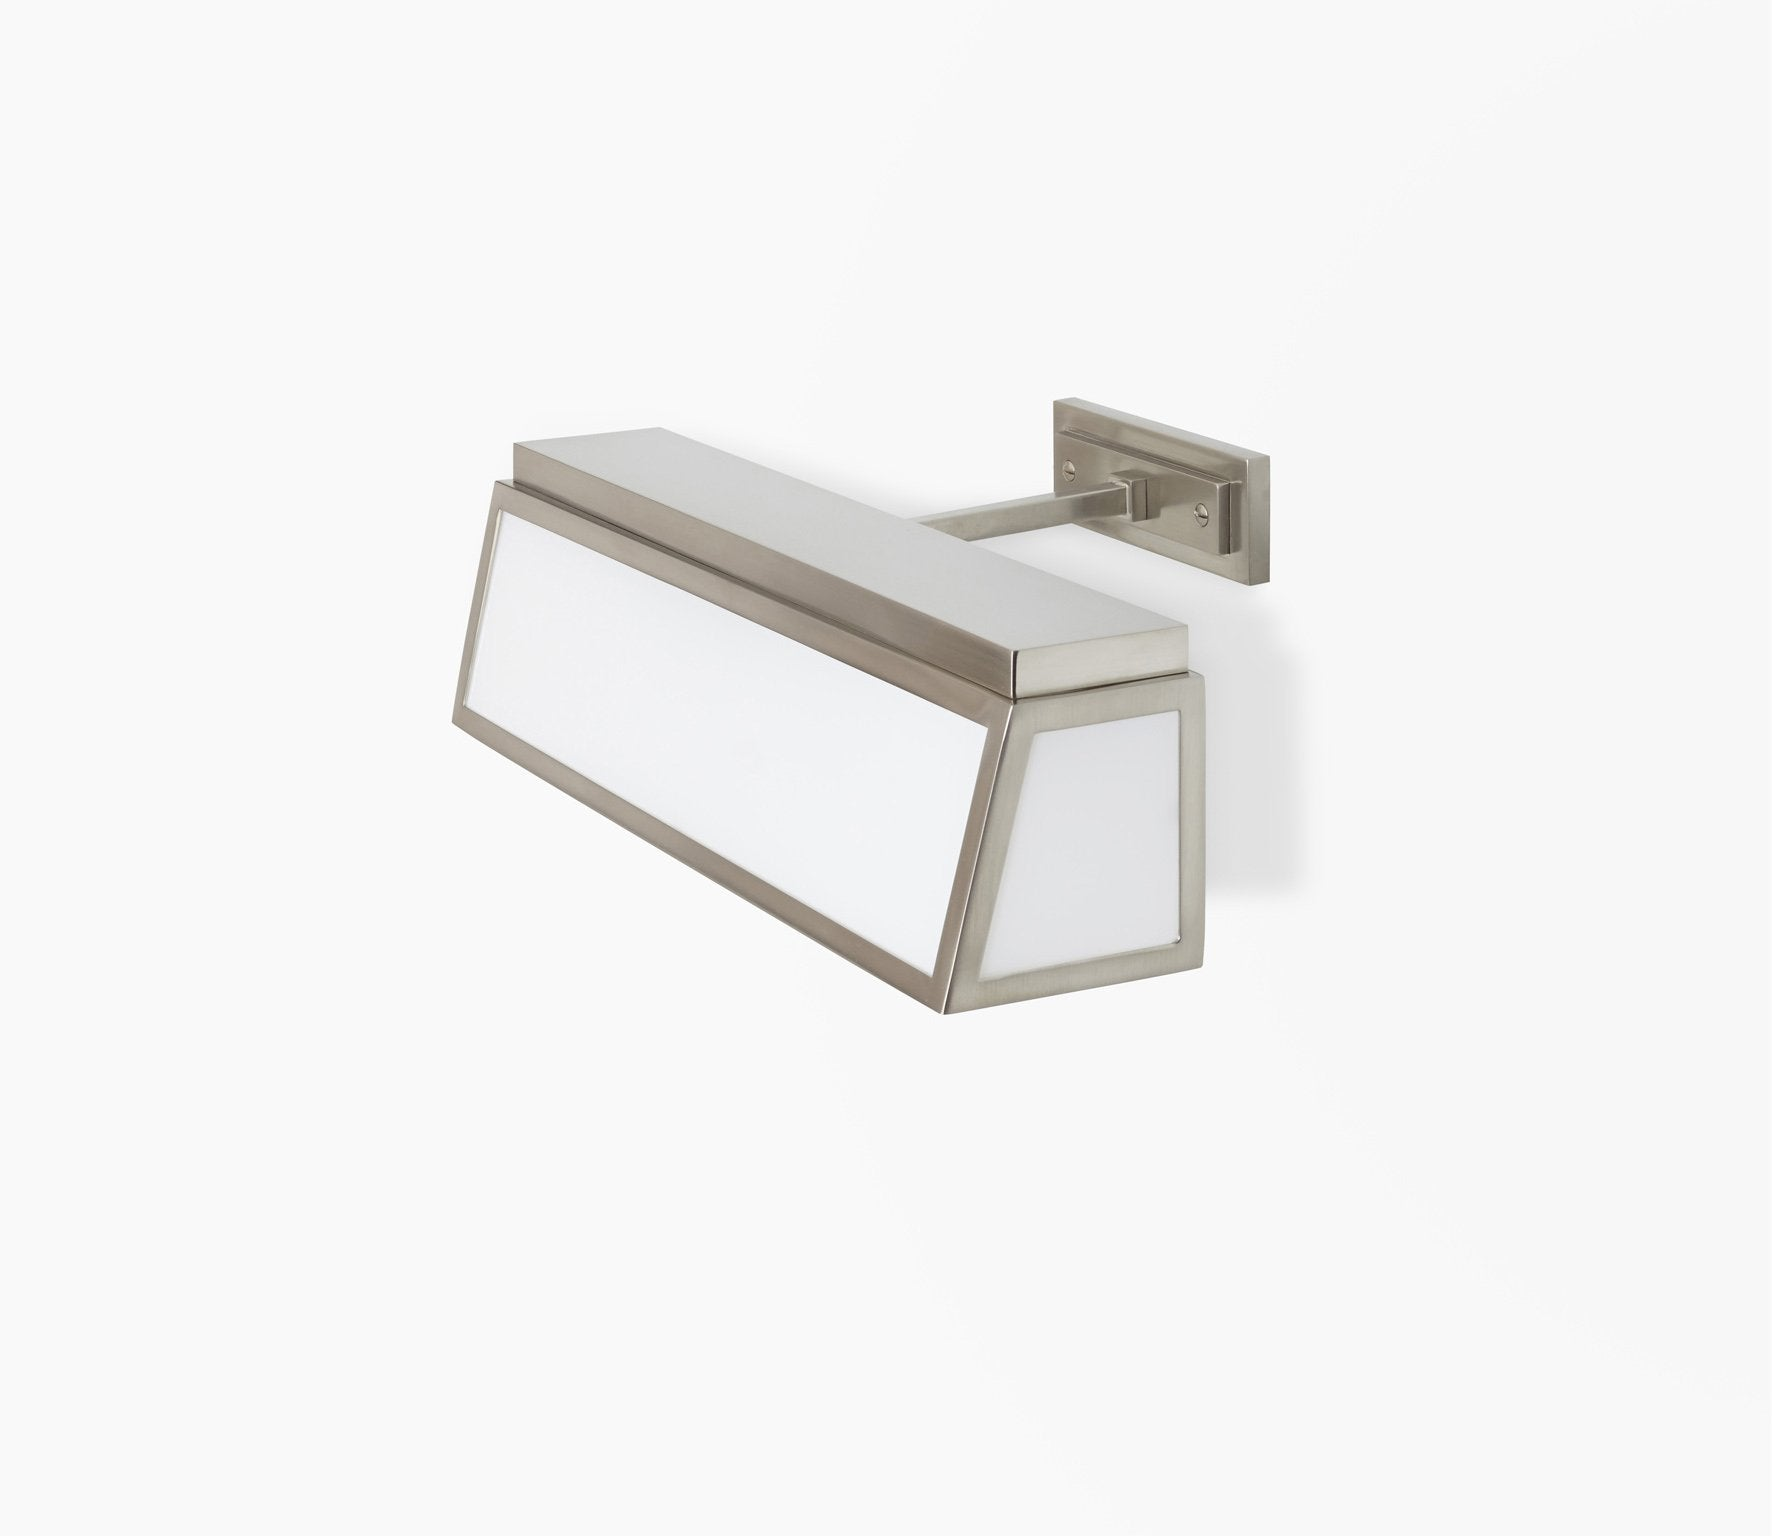 Strand Wall Light Product Image 1